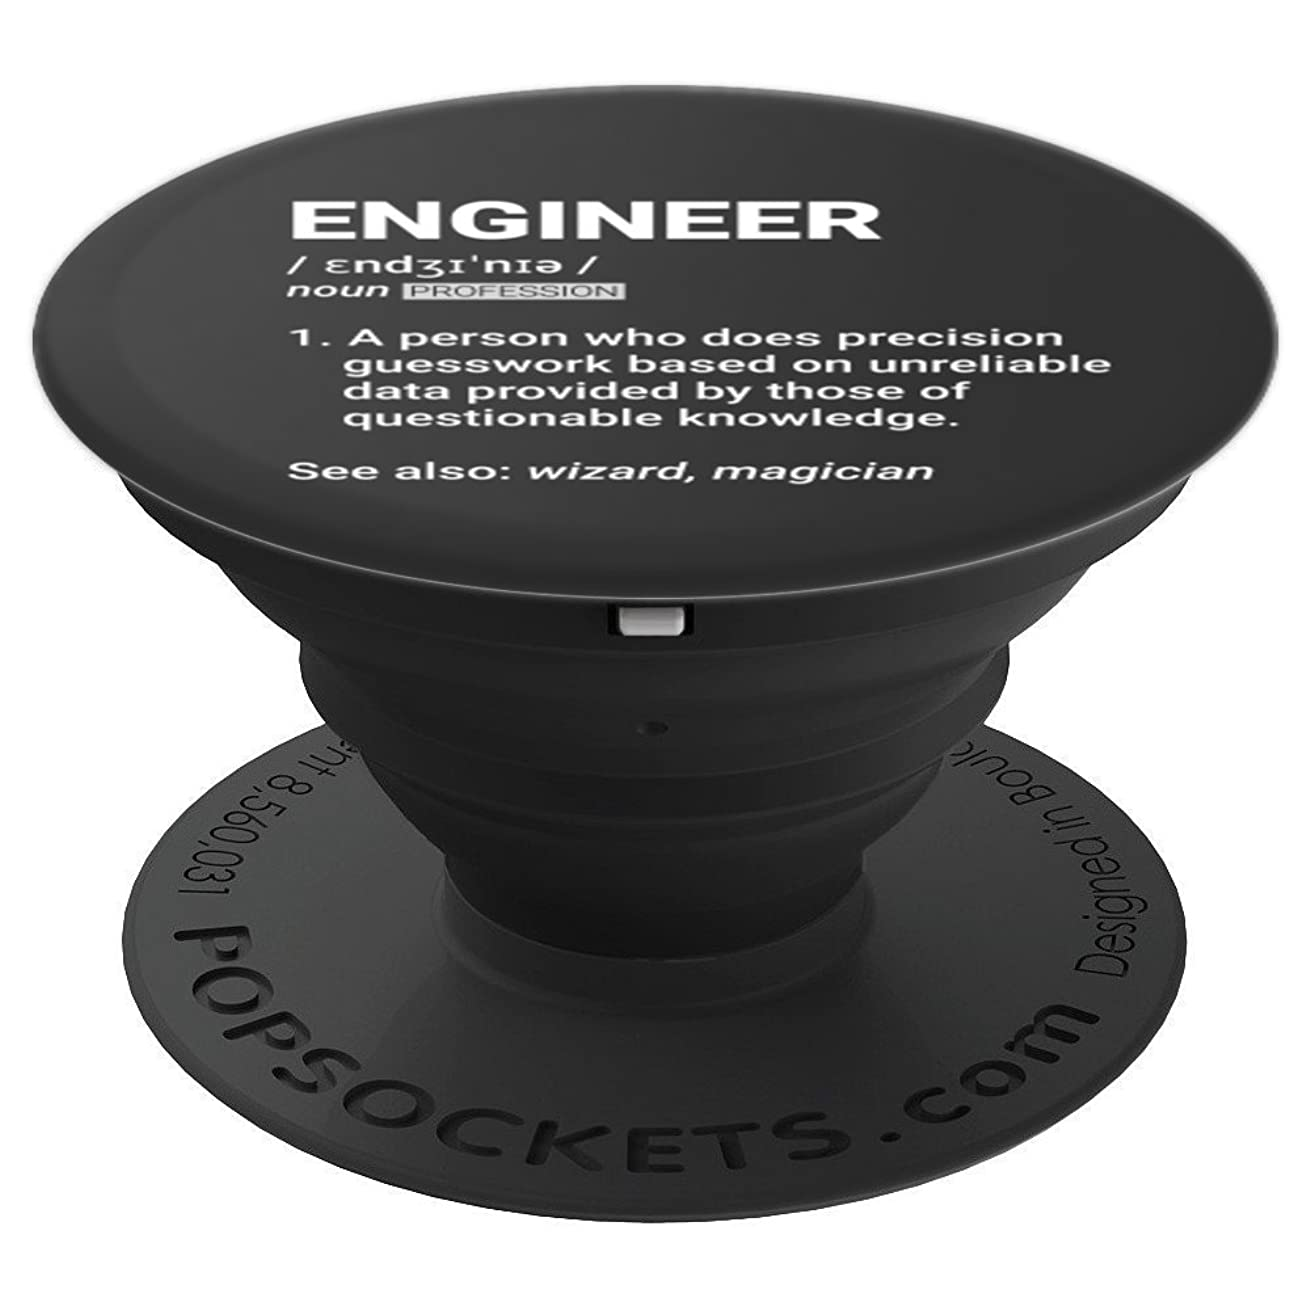 Engineer Definition | Geeky engineering gift - PopSockets Grip and Stand for Phones and Tablets